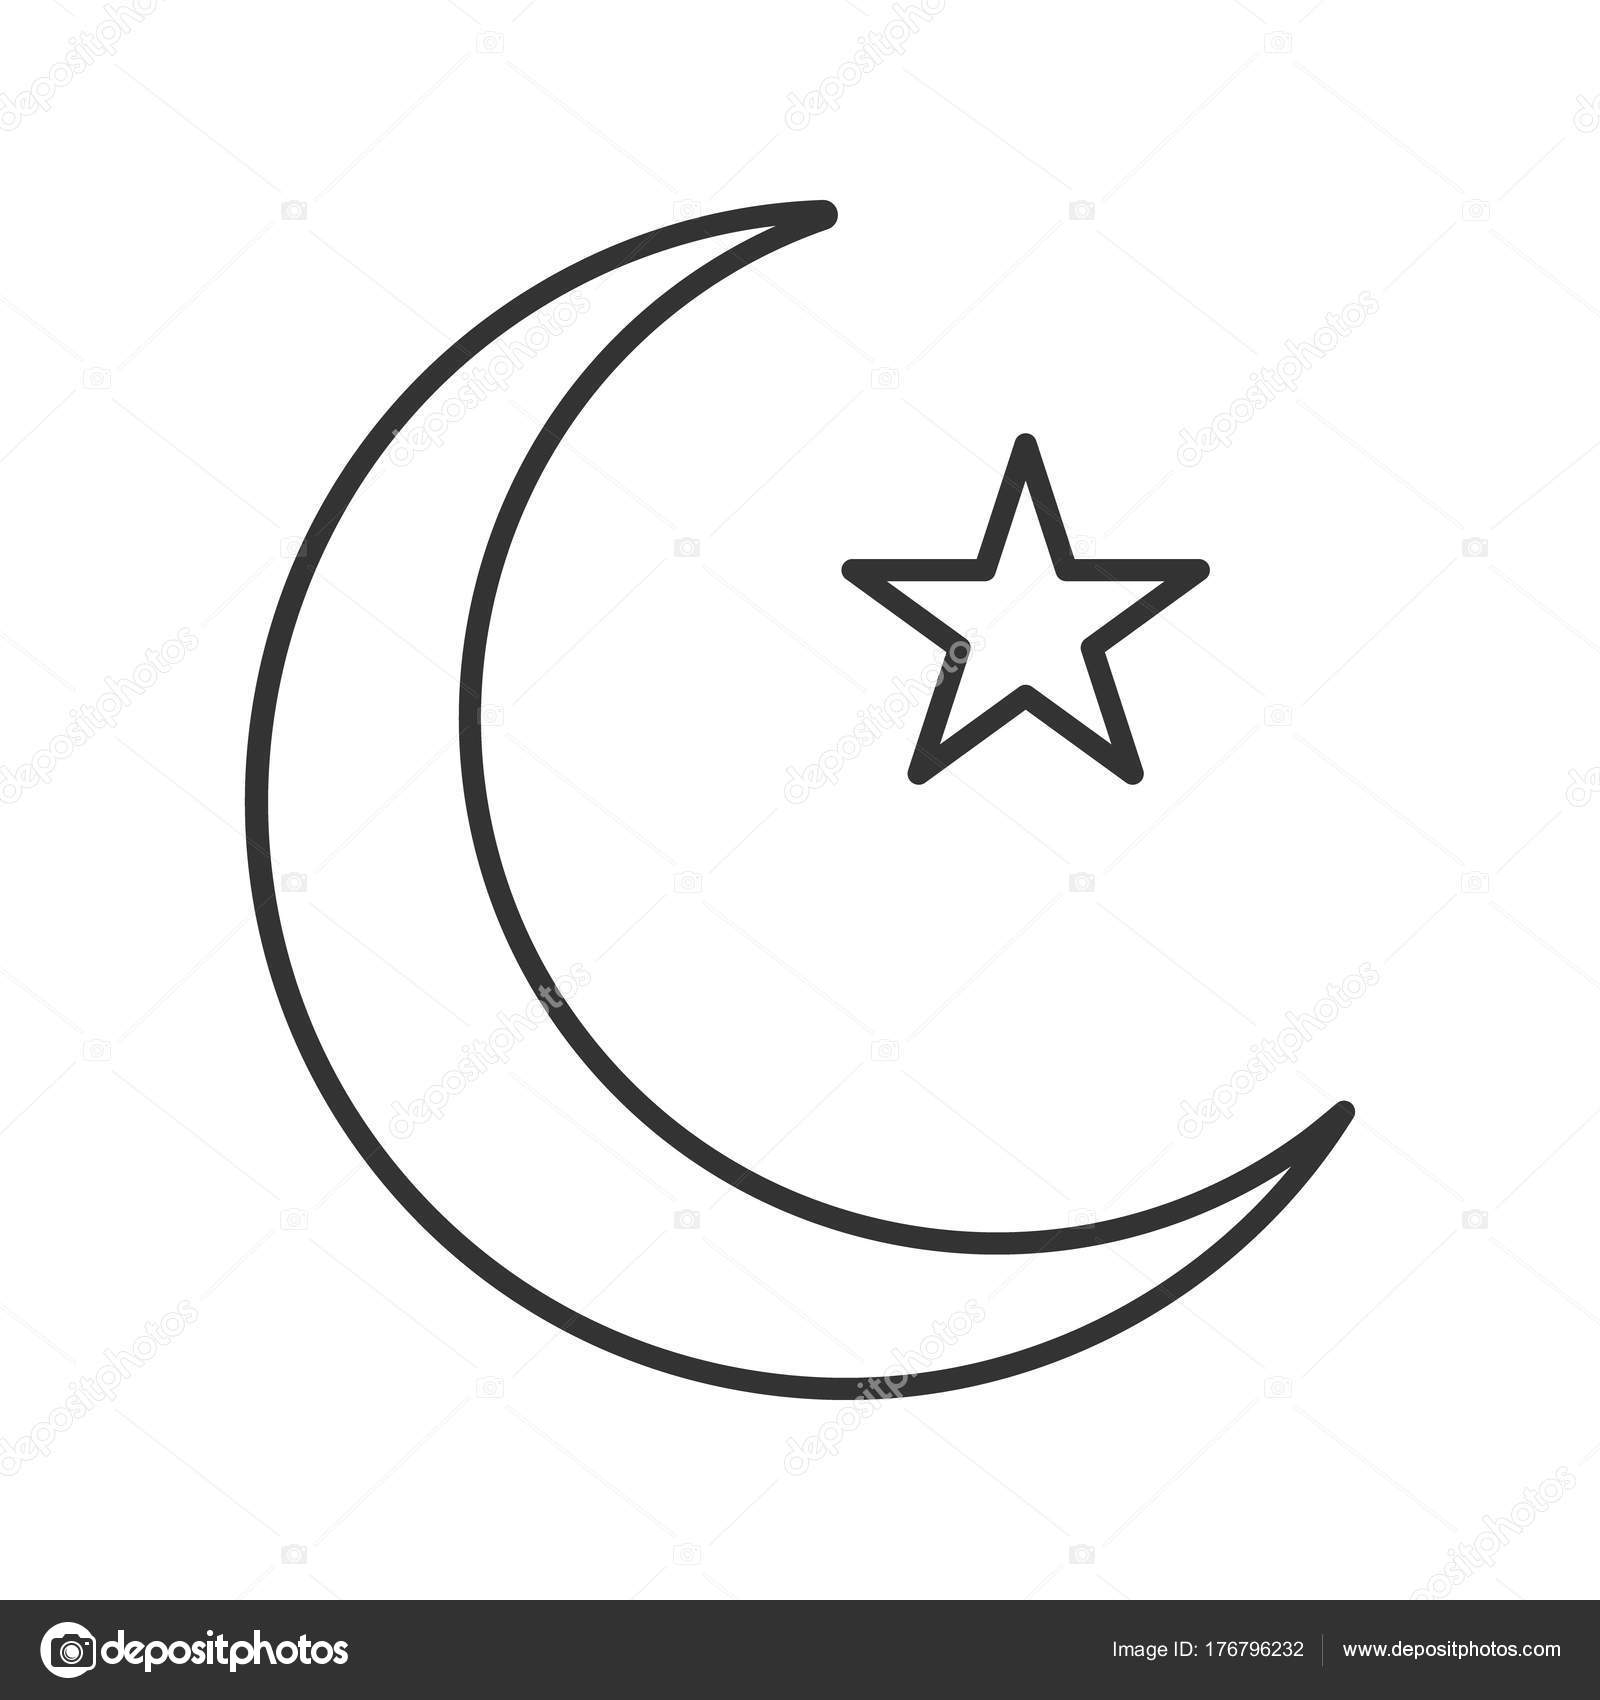 star crescent moon linear icon ottoman flag thin line illustration stock vector c bsd 176796232 https depositphotos com 176796232 stock illustration star crescent moon linear icon html